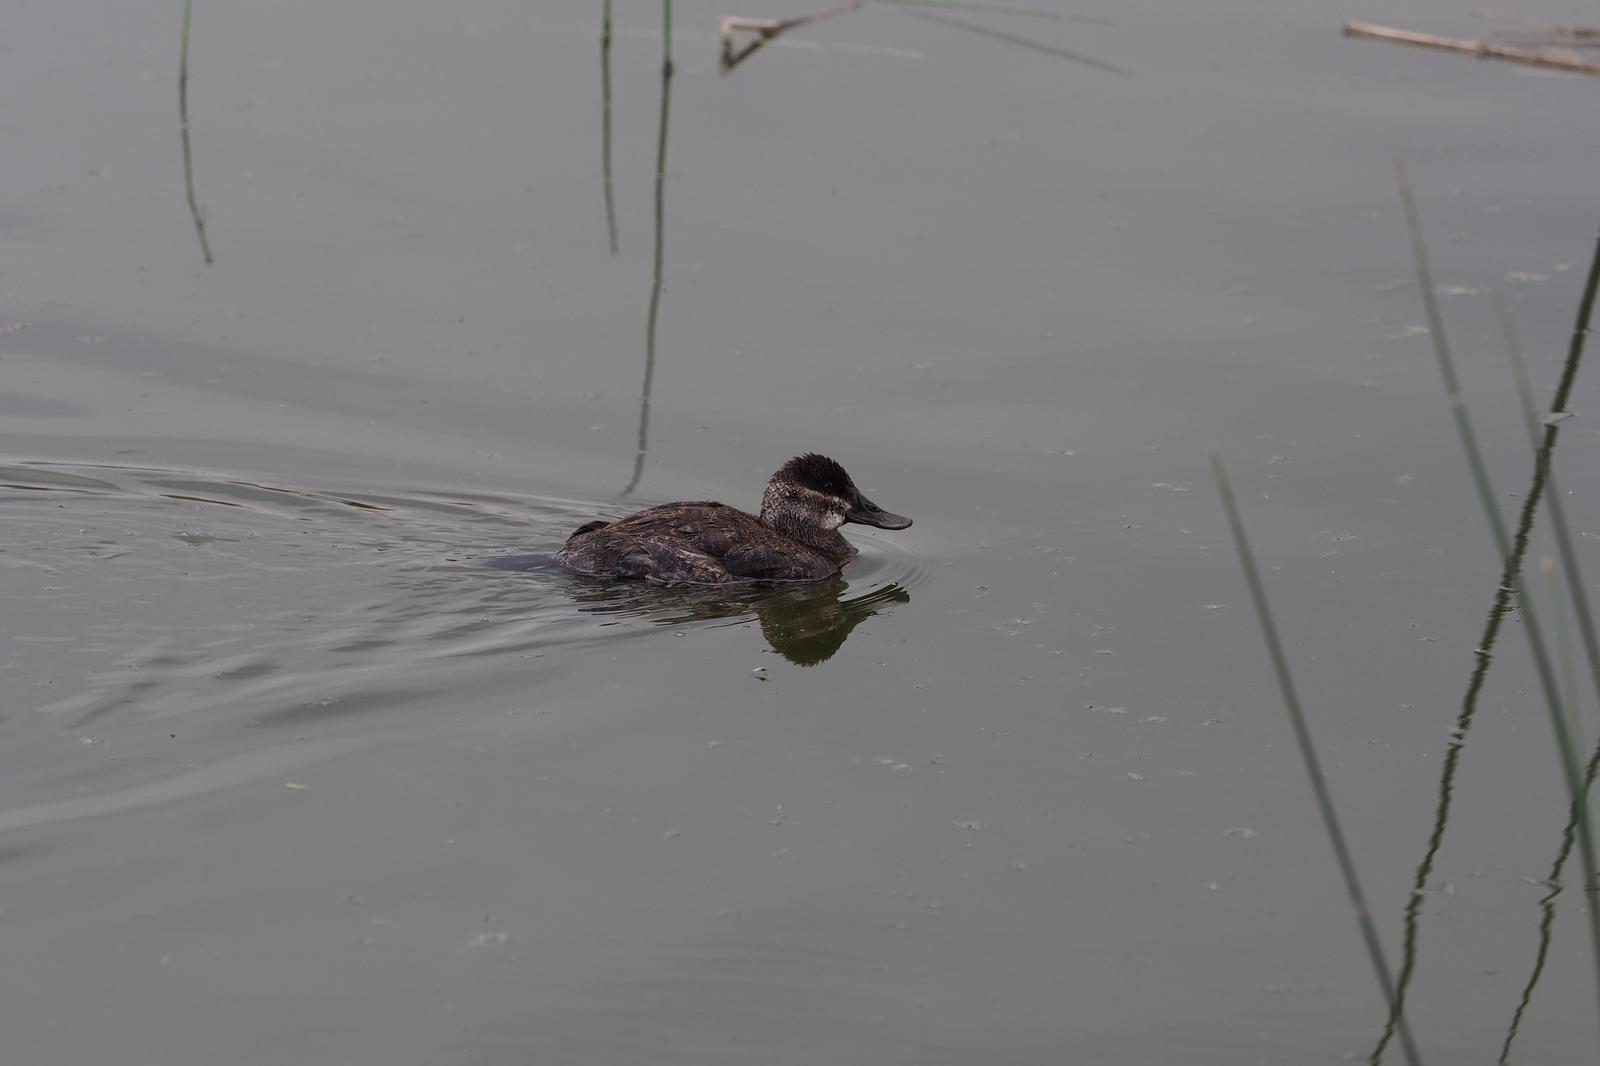 Ruddy Duck Photo by Colin Hill